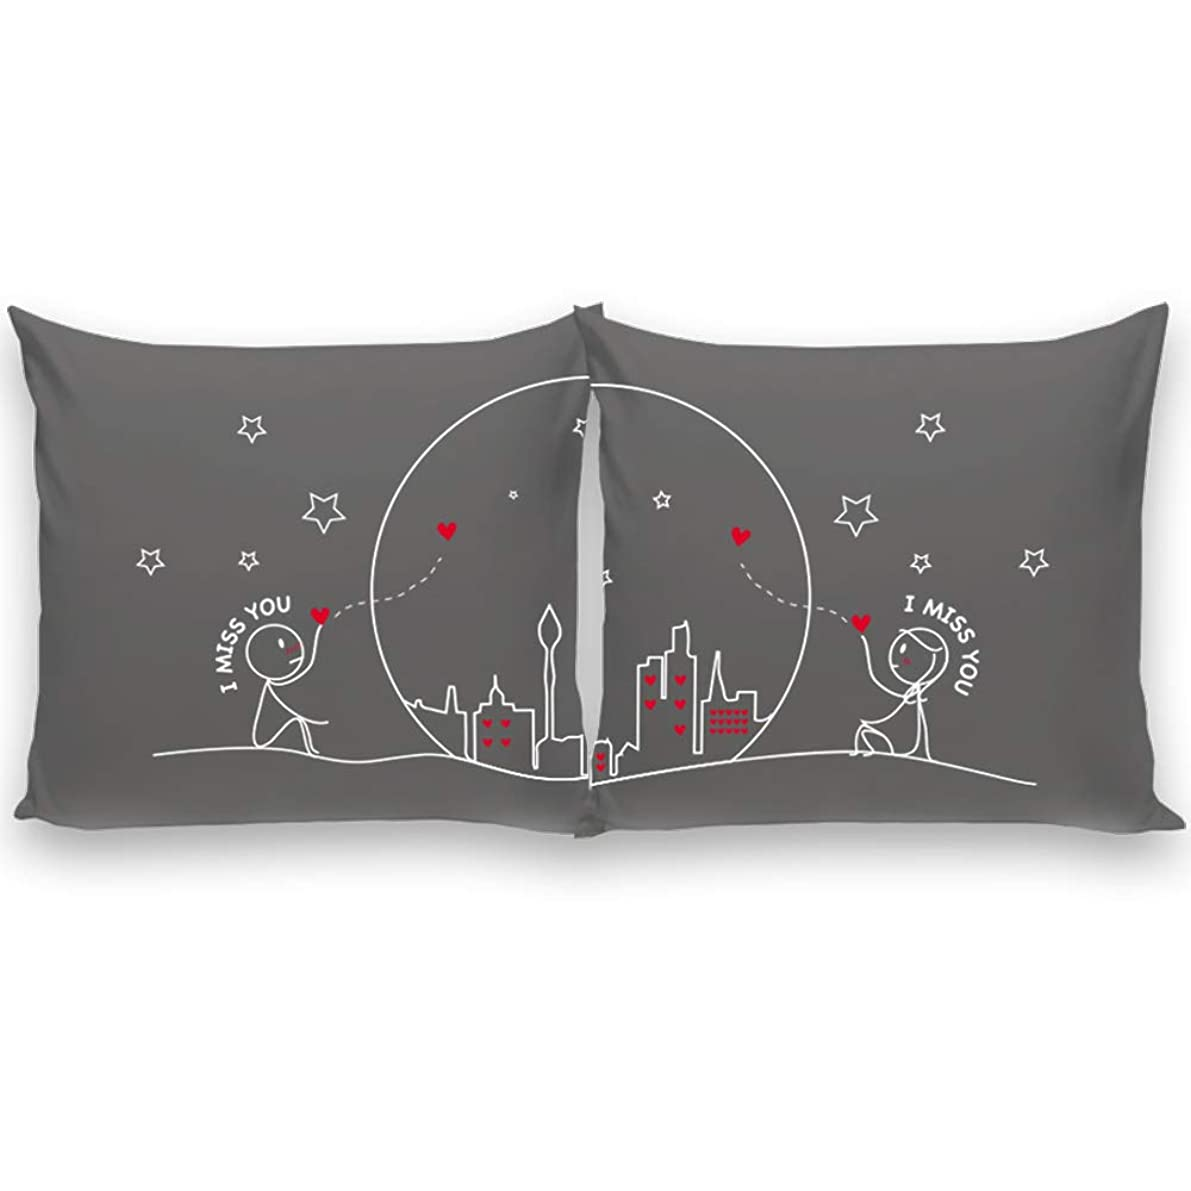 BoldLoft Miss Us Together His and Hers Throw Pillow Covers-Long Distance Relationships Gifts Couple Pillowcases Boyfriend Girlfriend Anniversary Valentine's Day-Euro Pillow Covers 26x26 Set of 2 Grey